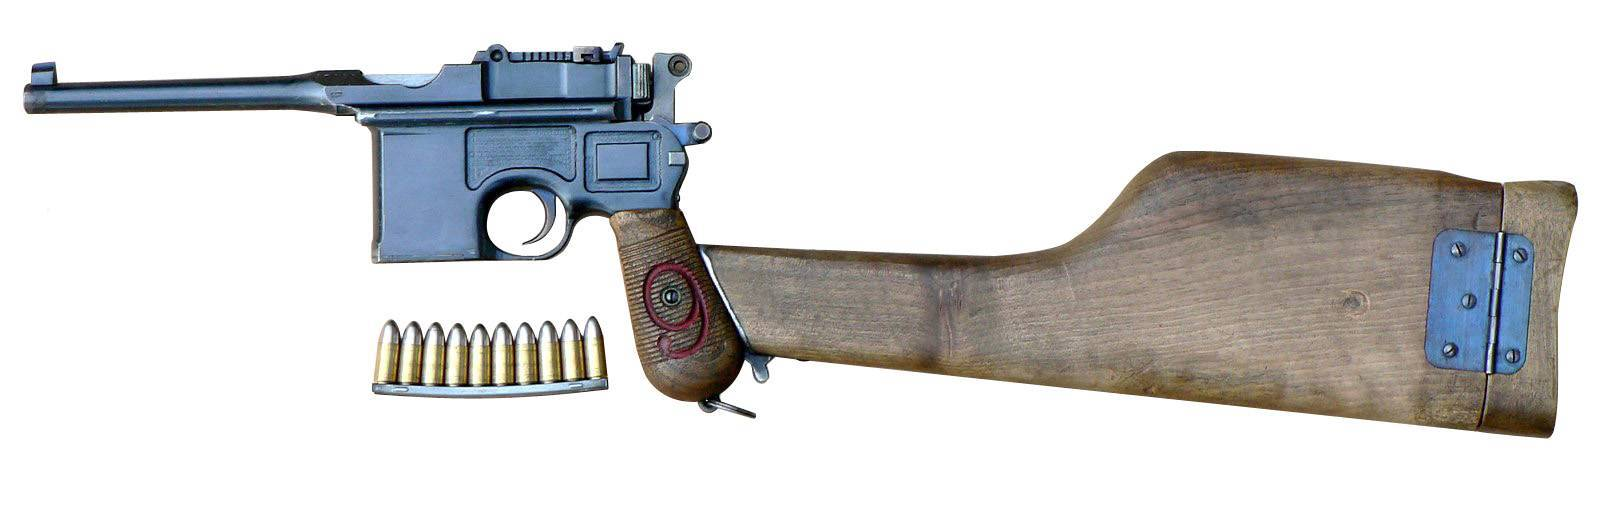 Винтовка mauser m1895 short rifle — характеристики, фото, ттх